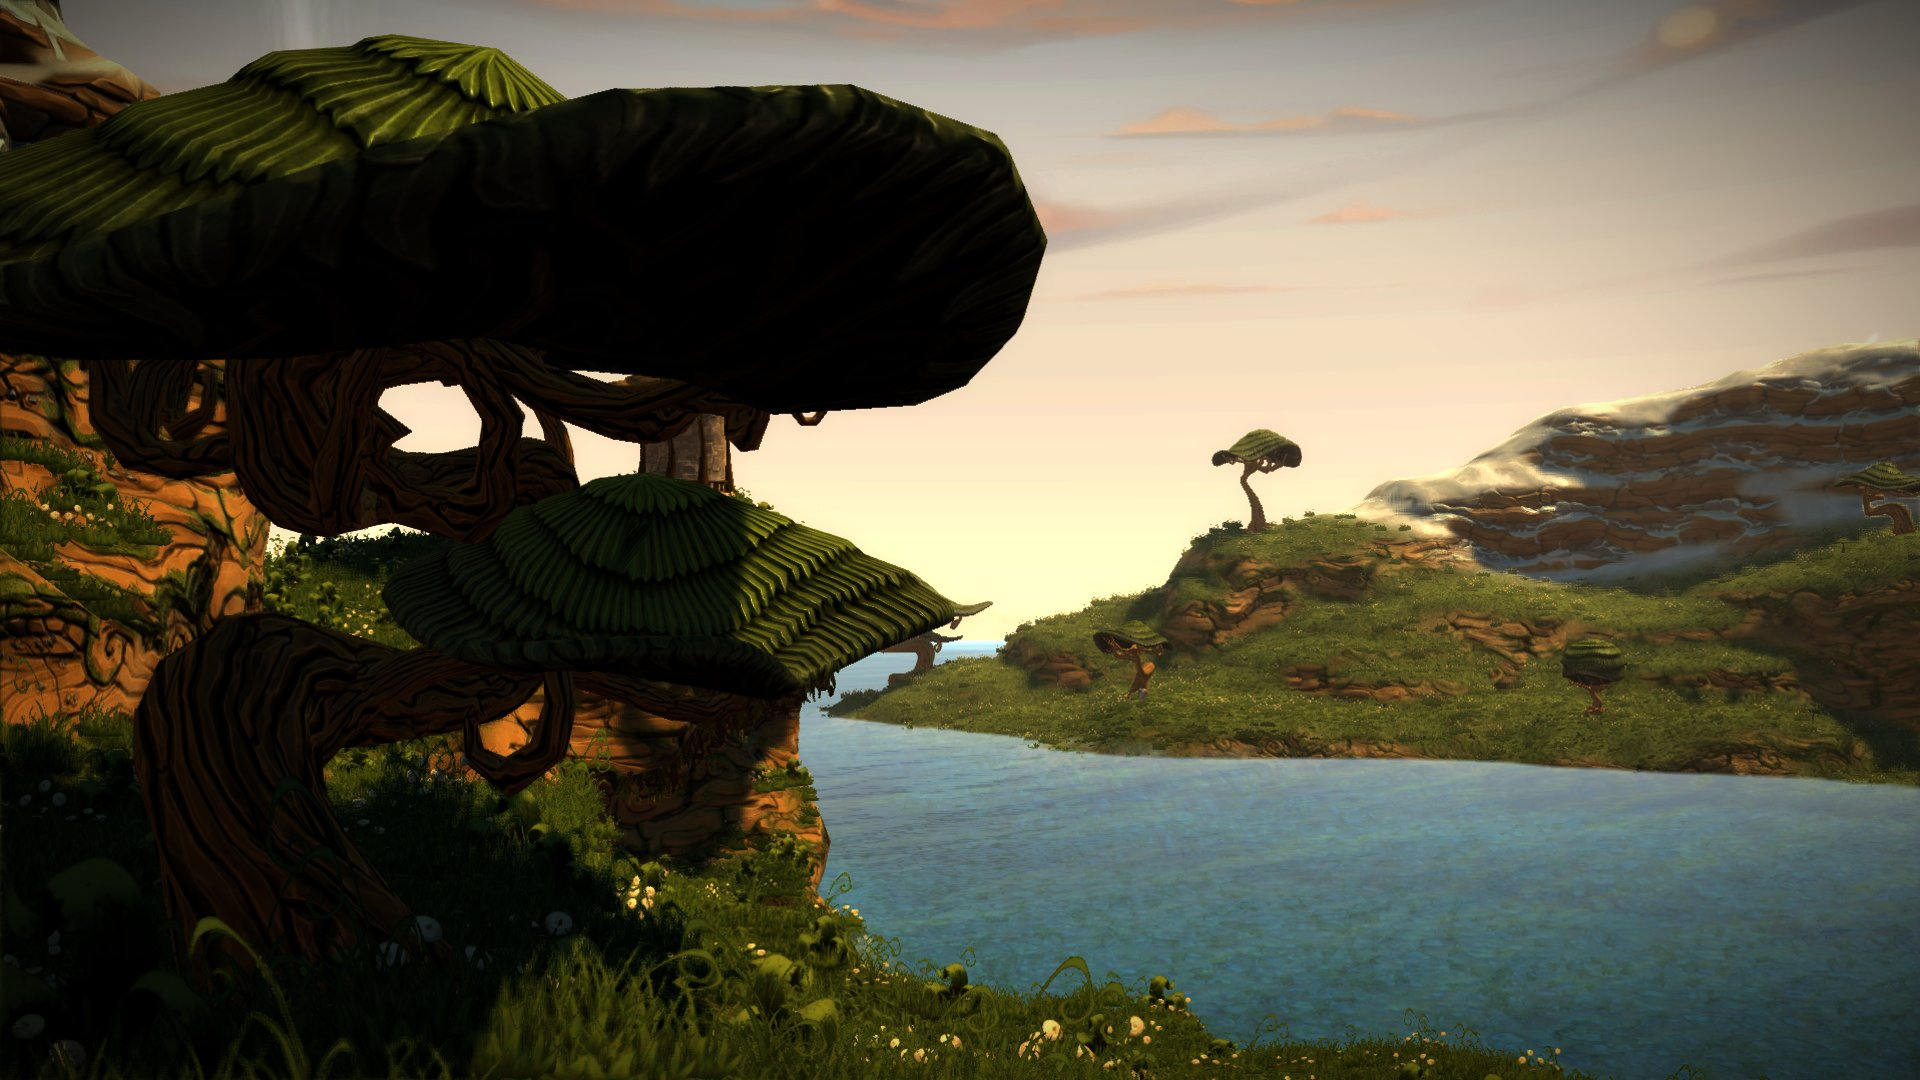 project spark images